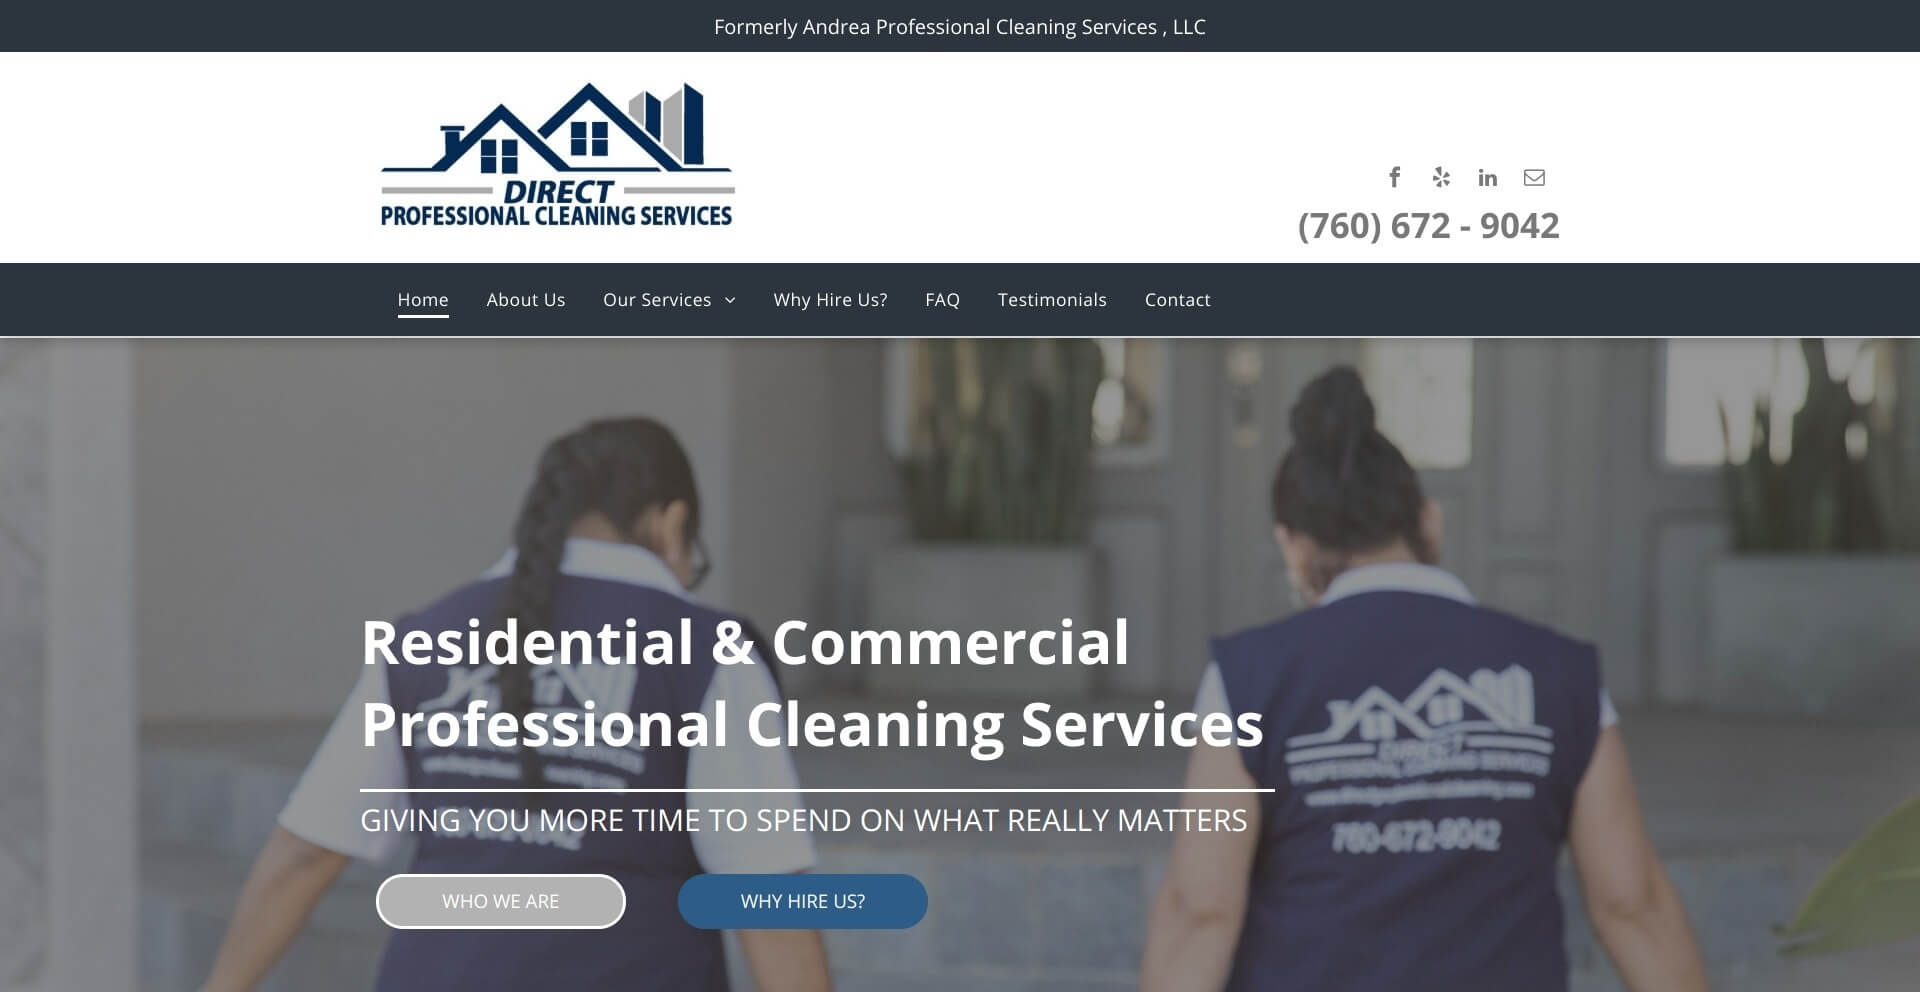 Direct Professional Cleaning Services